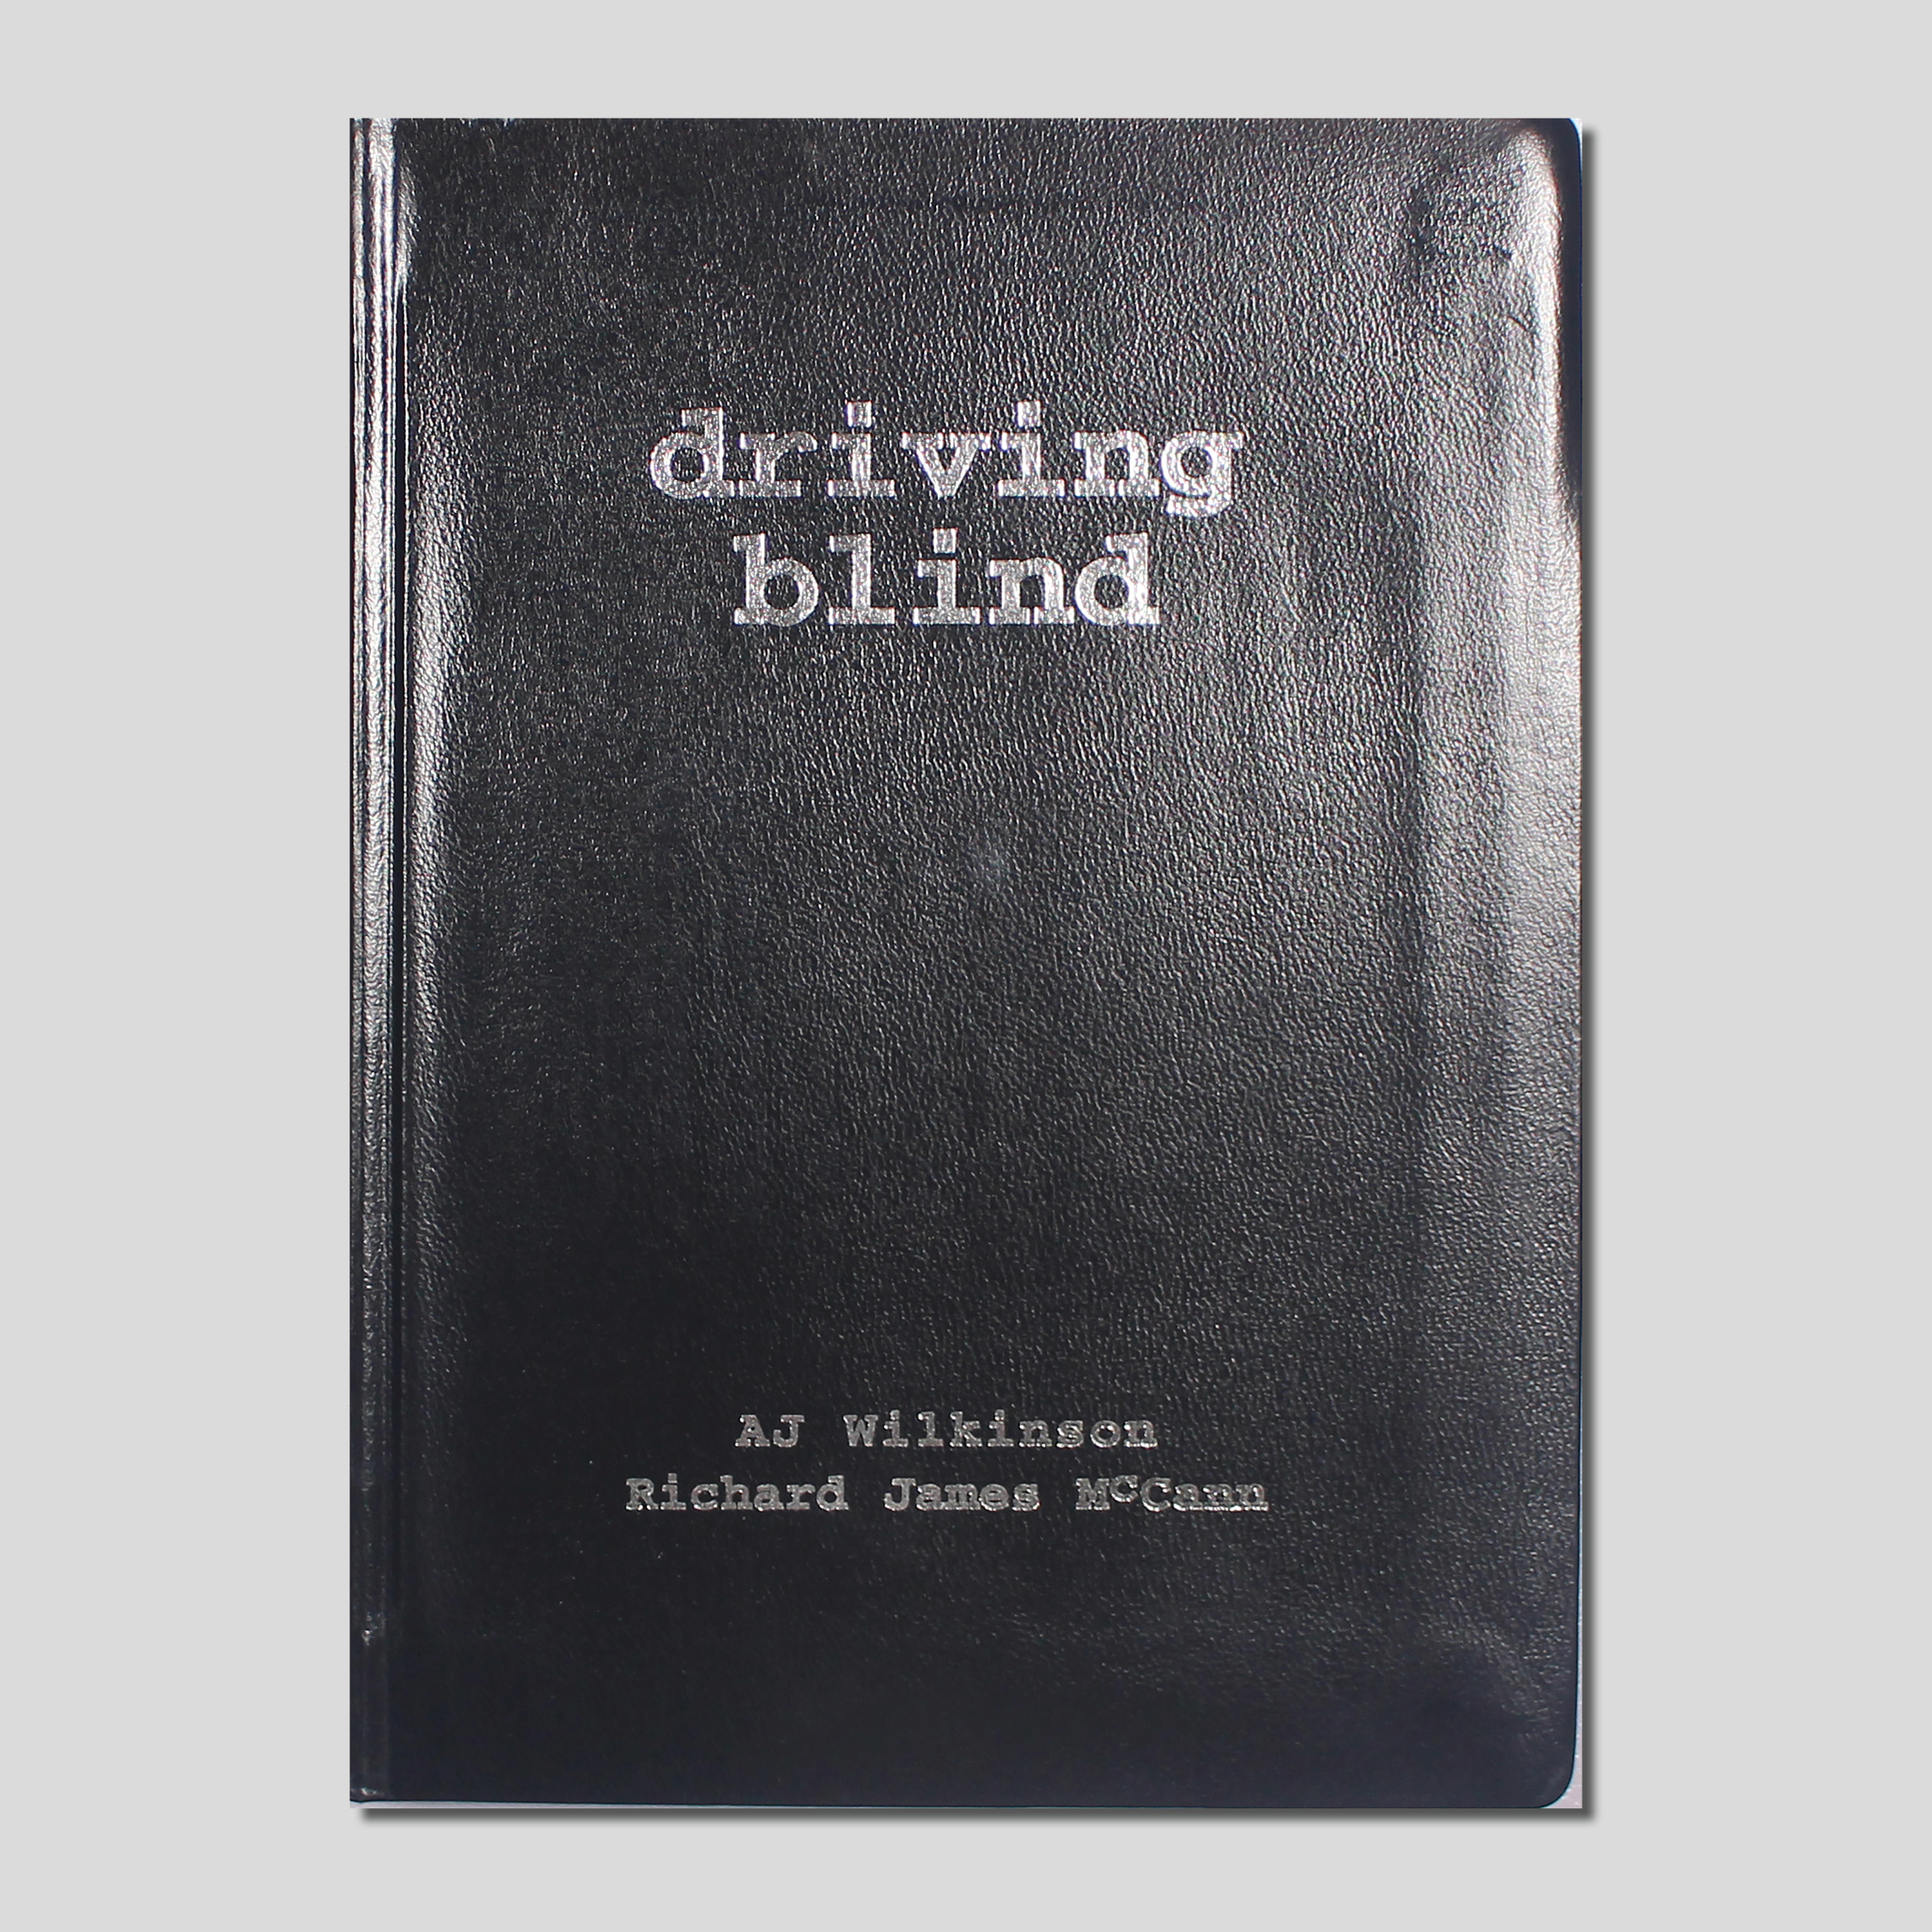 Driving Blind by A J Wilkinson and Richard James McCann